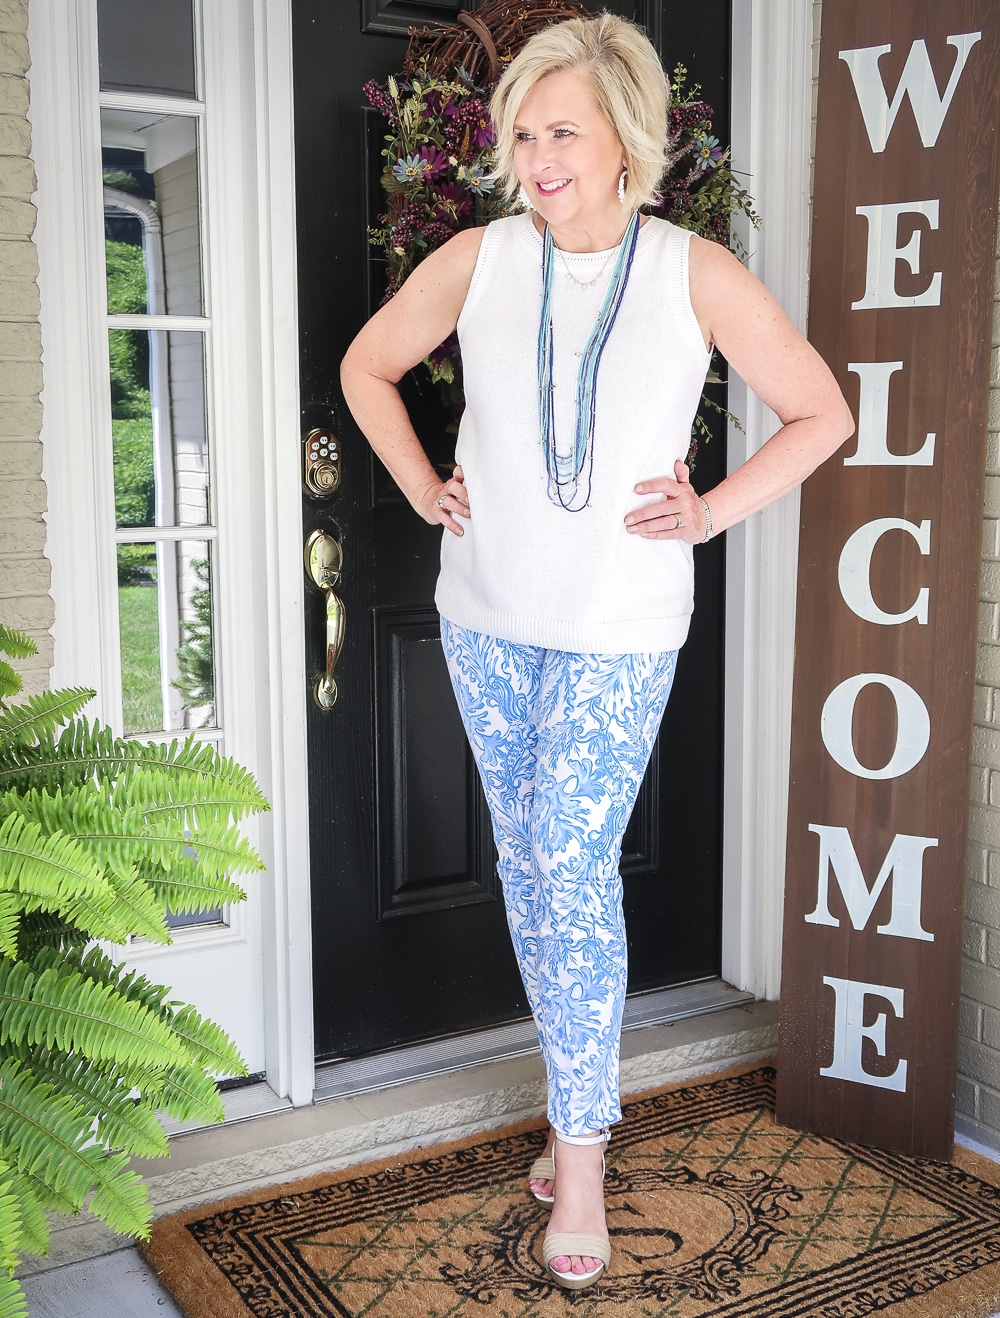 Fashion Blogger 50 Is Not Old is wearing a classic blue and white outfit. A white sweater, blue and white printed ankle pants, and espadrille wedges